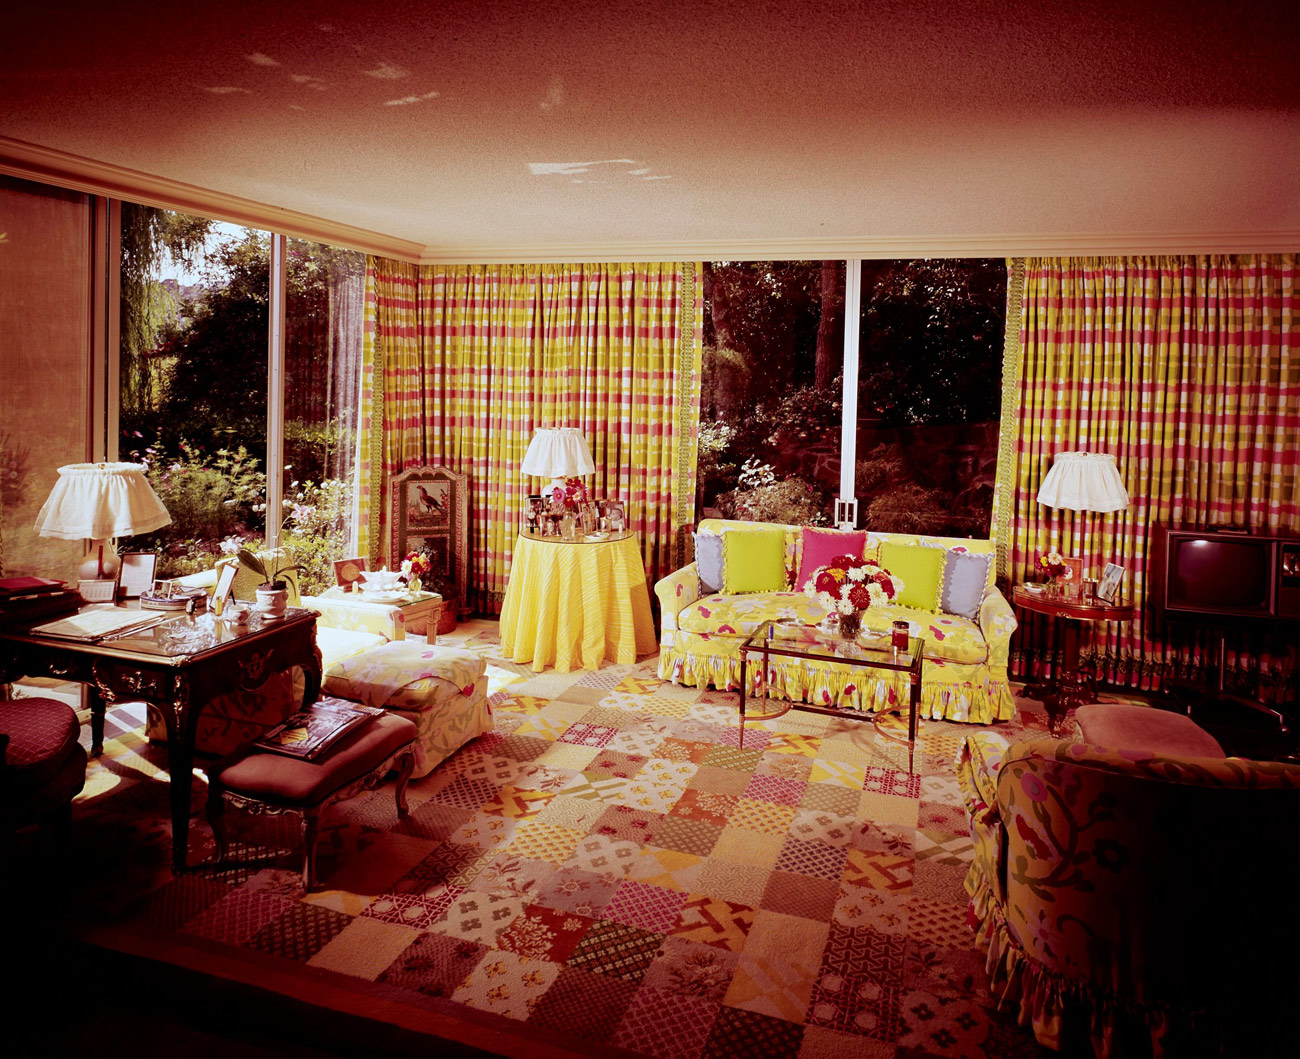 Living room with yellow and red accents. The carpet looks like a patchwork quilt.